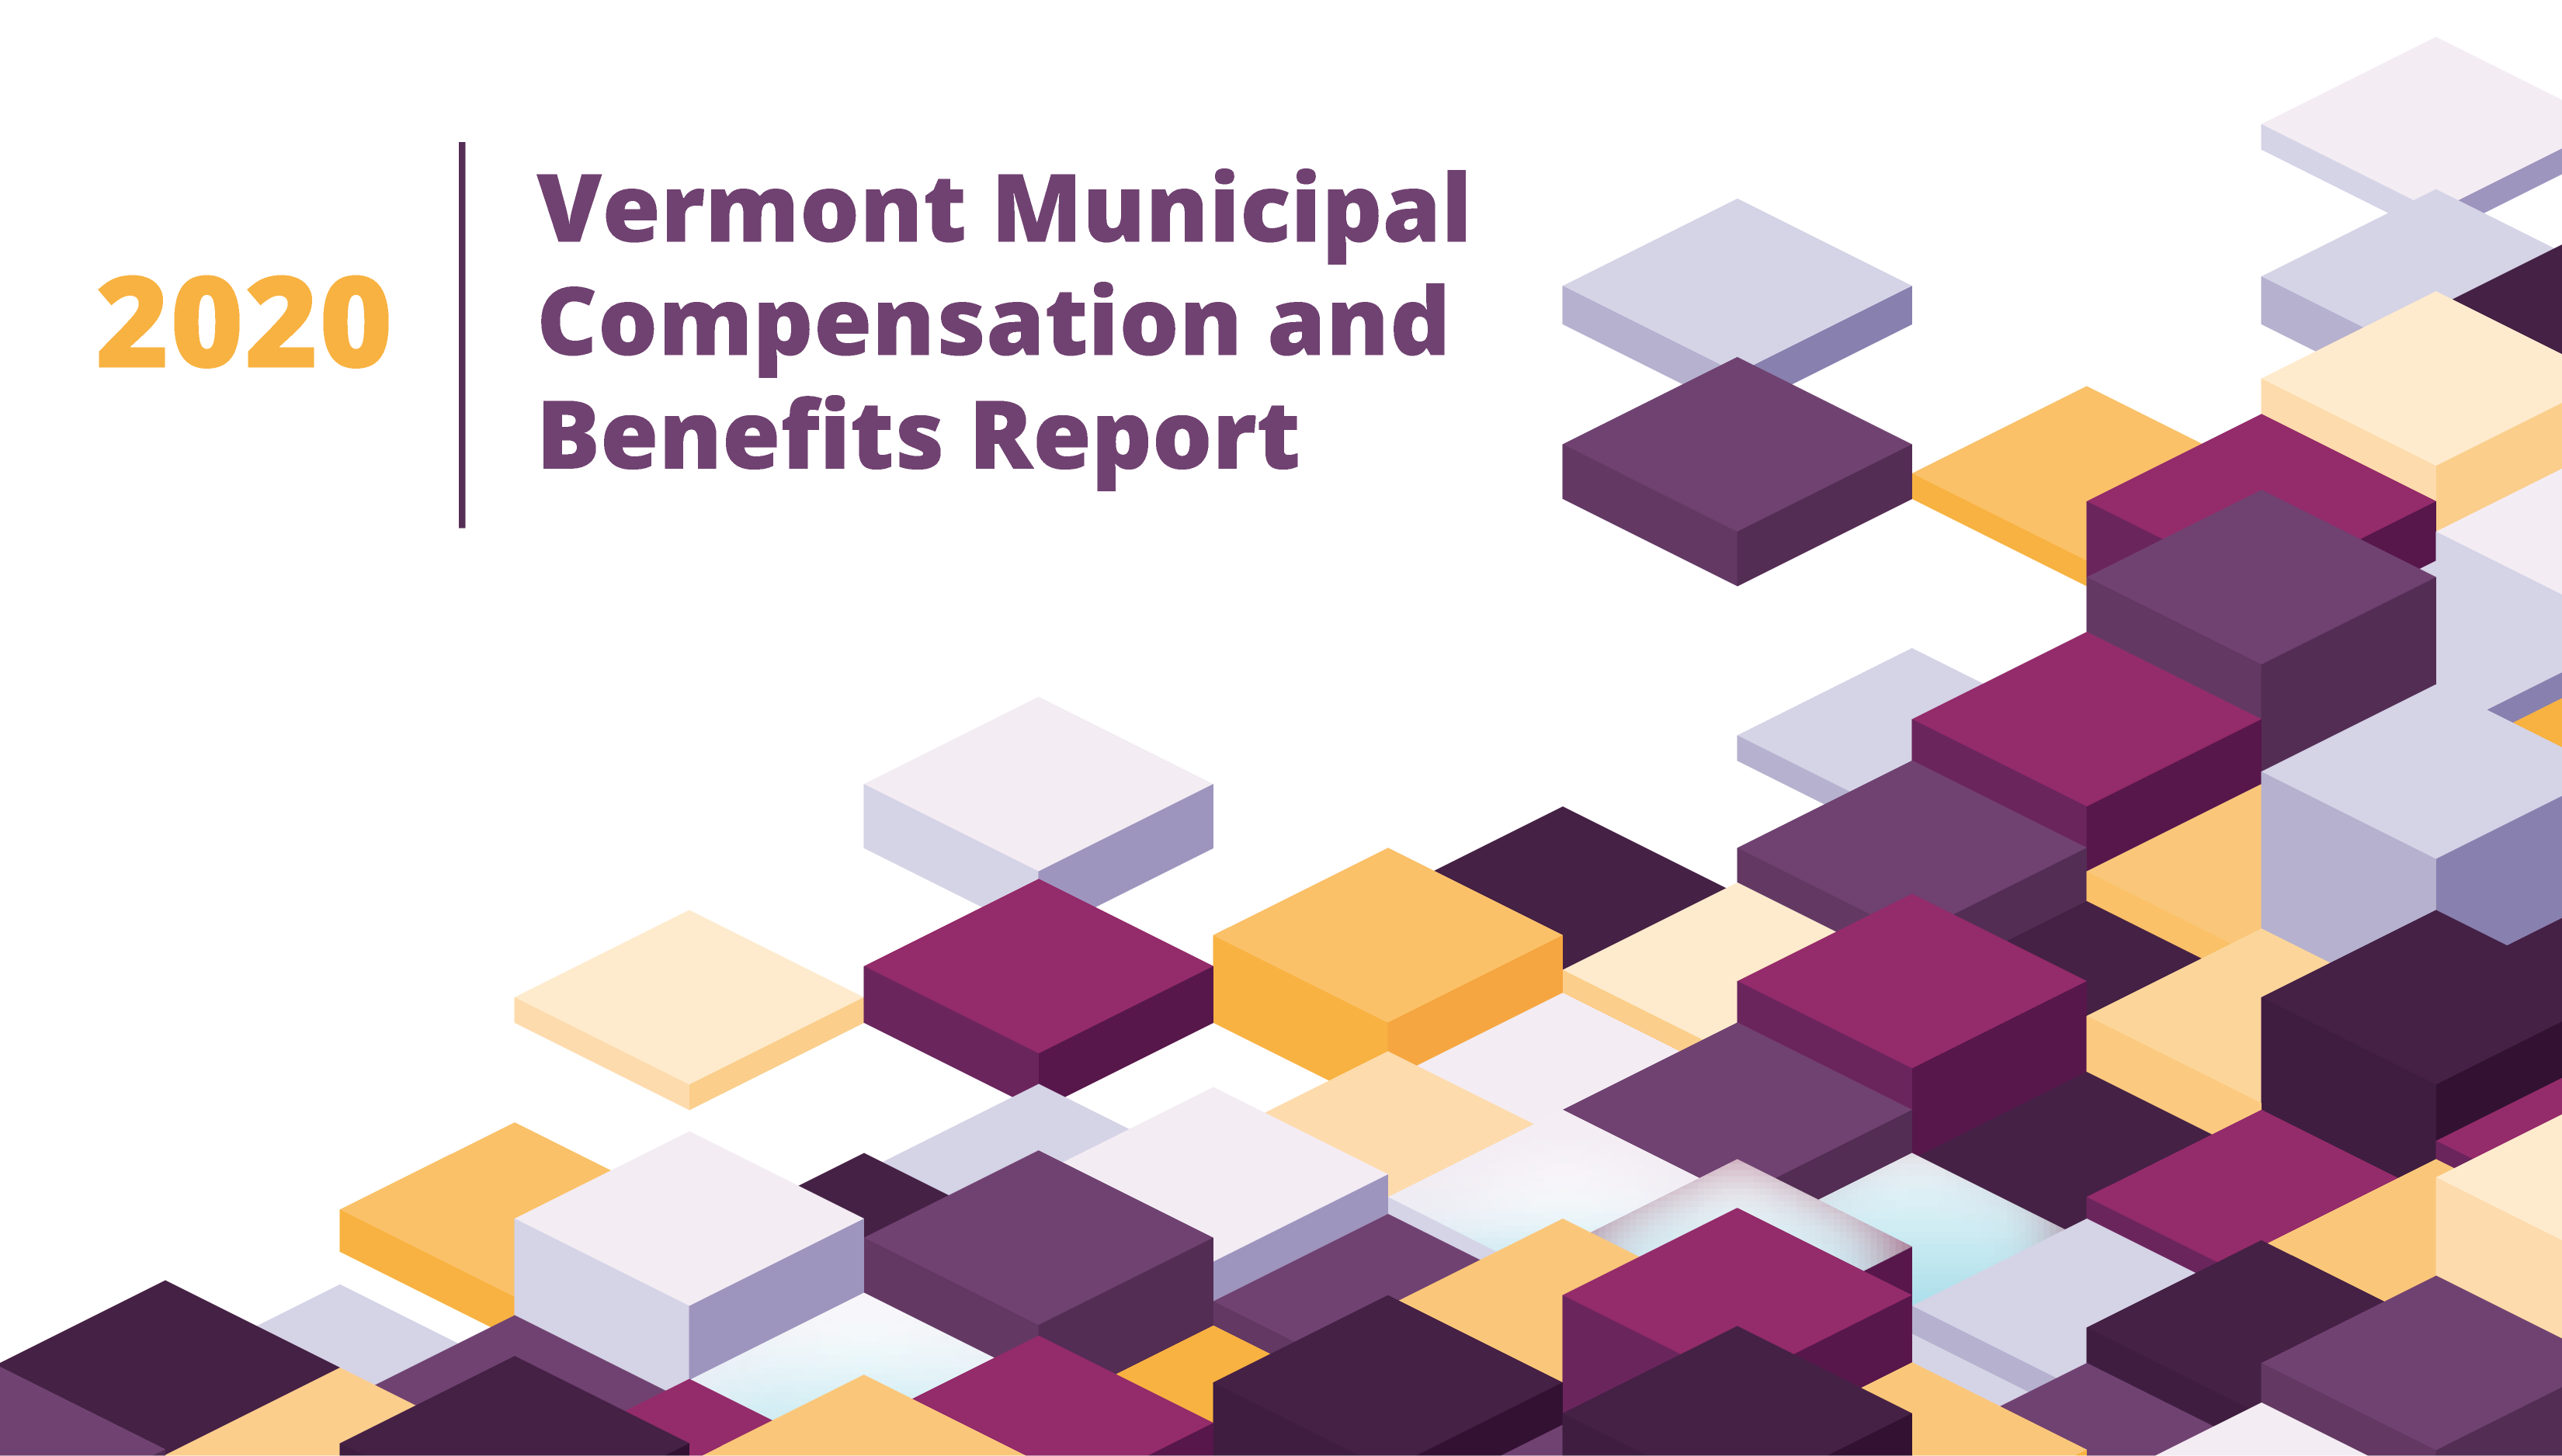 2020 Vermont Municipal Compensation and Benefits Report